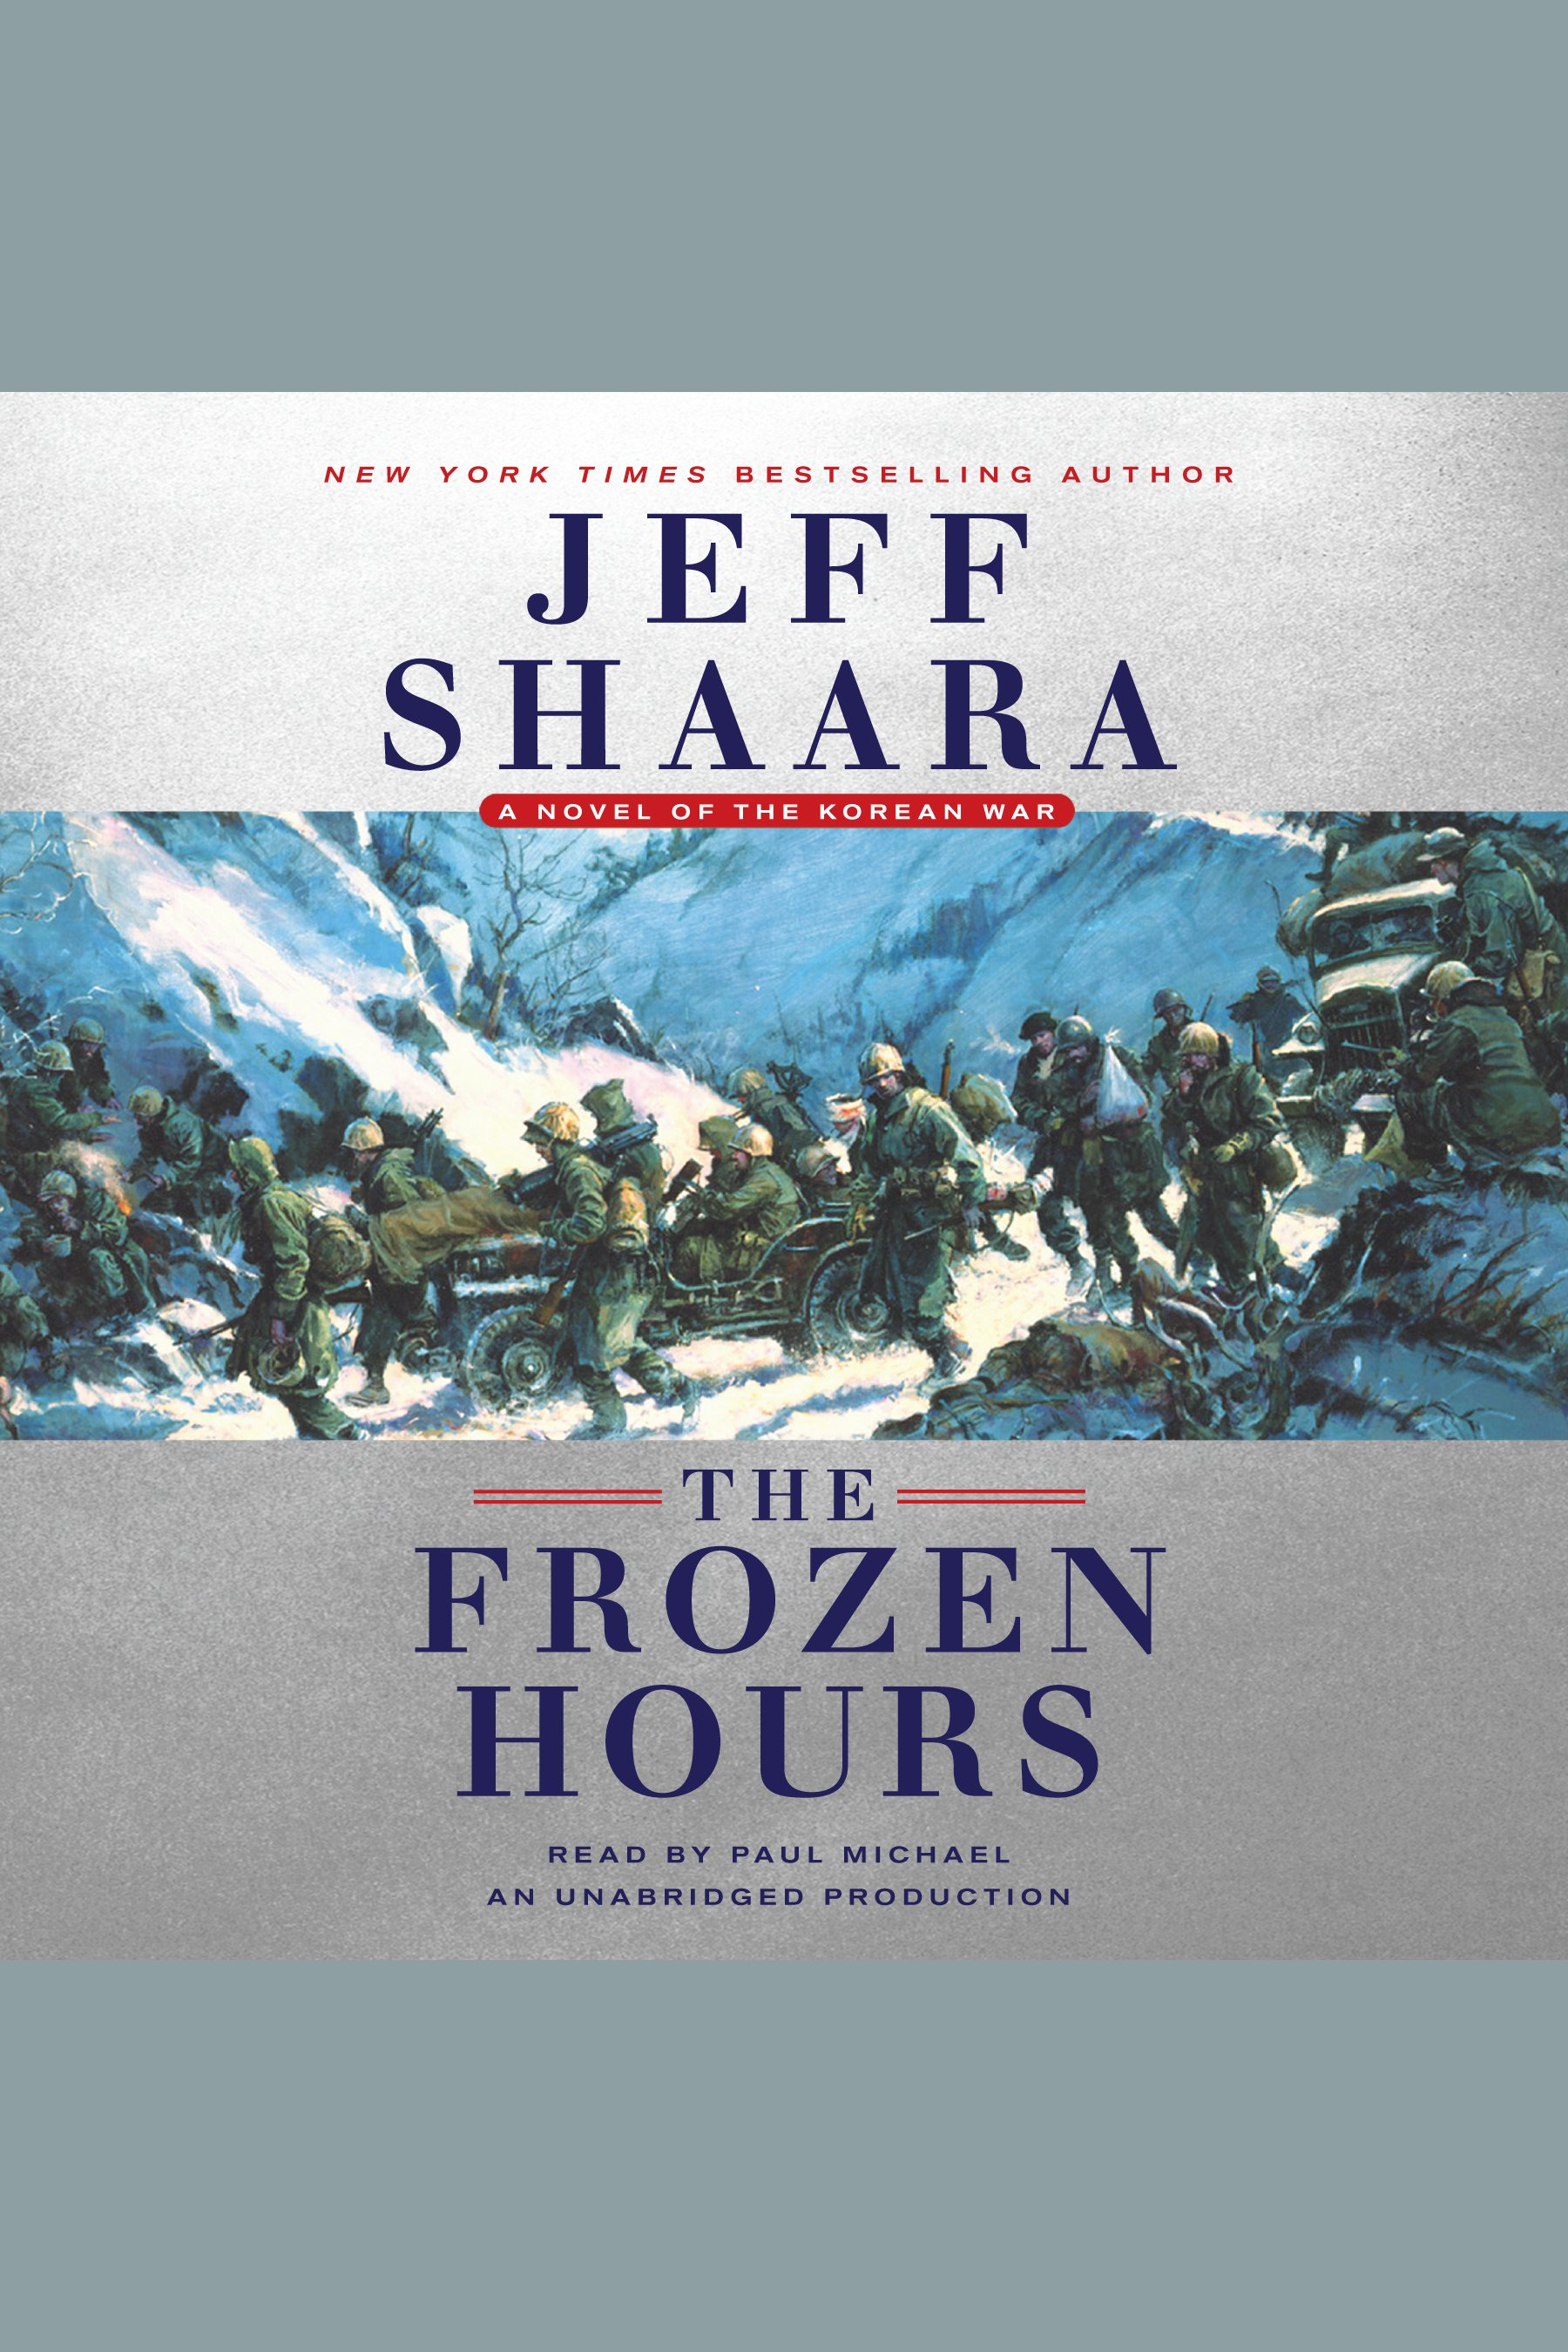 The frozen hours a novel of the Korean War cover image